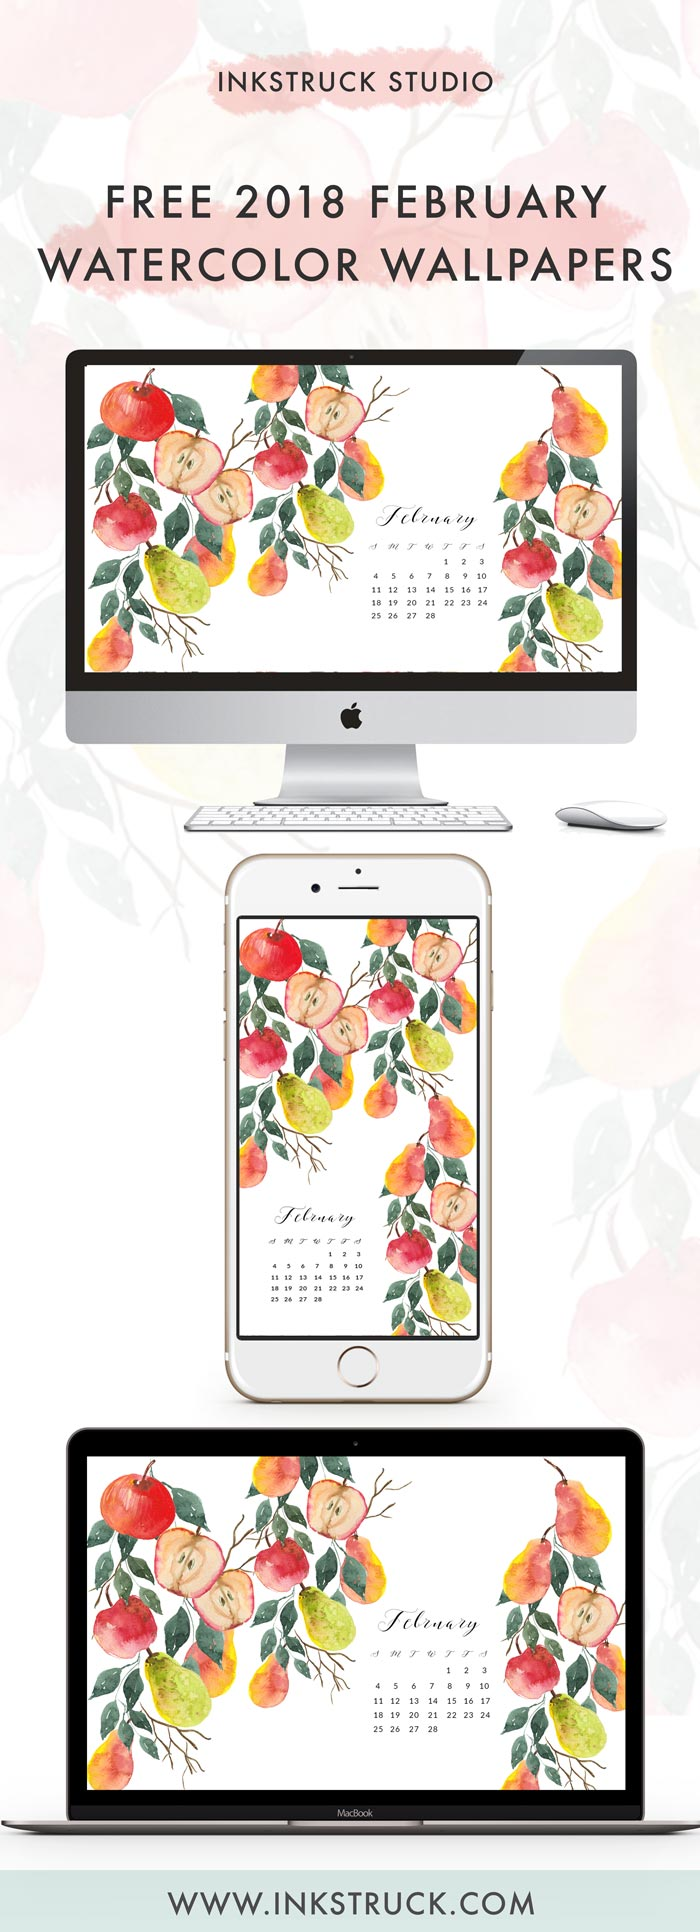 Get hold of my free 2018 February watercolor wallpapers from this blog post. They're available undated as well - Inkstruck Studio